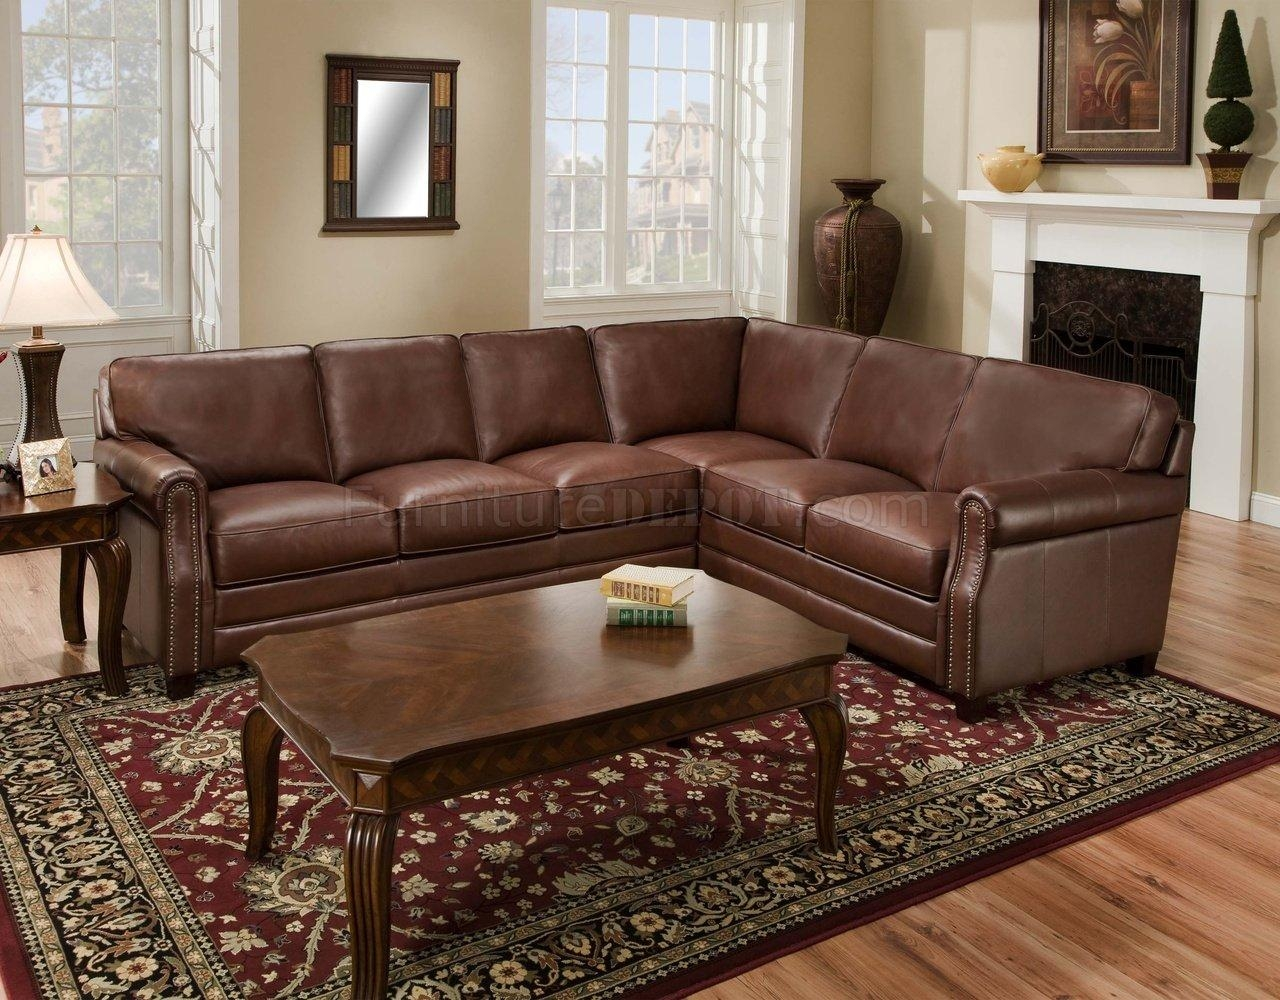 Brown Top Grain Italian Leather Traditional Sectional Sofa Pertaining To Traditional Sectional Sofas (Image 1 of 20)